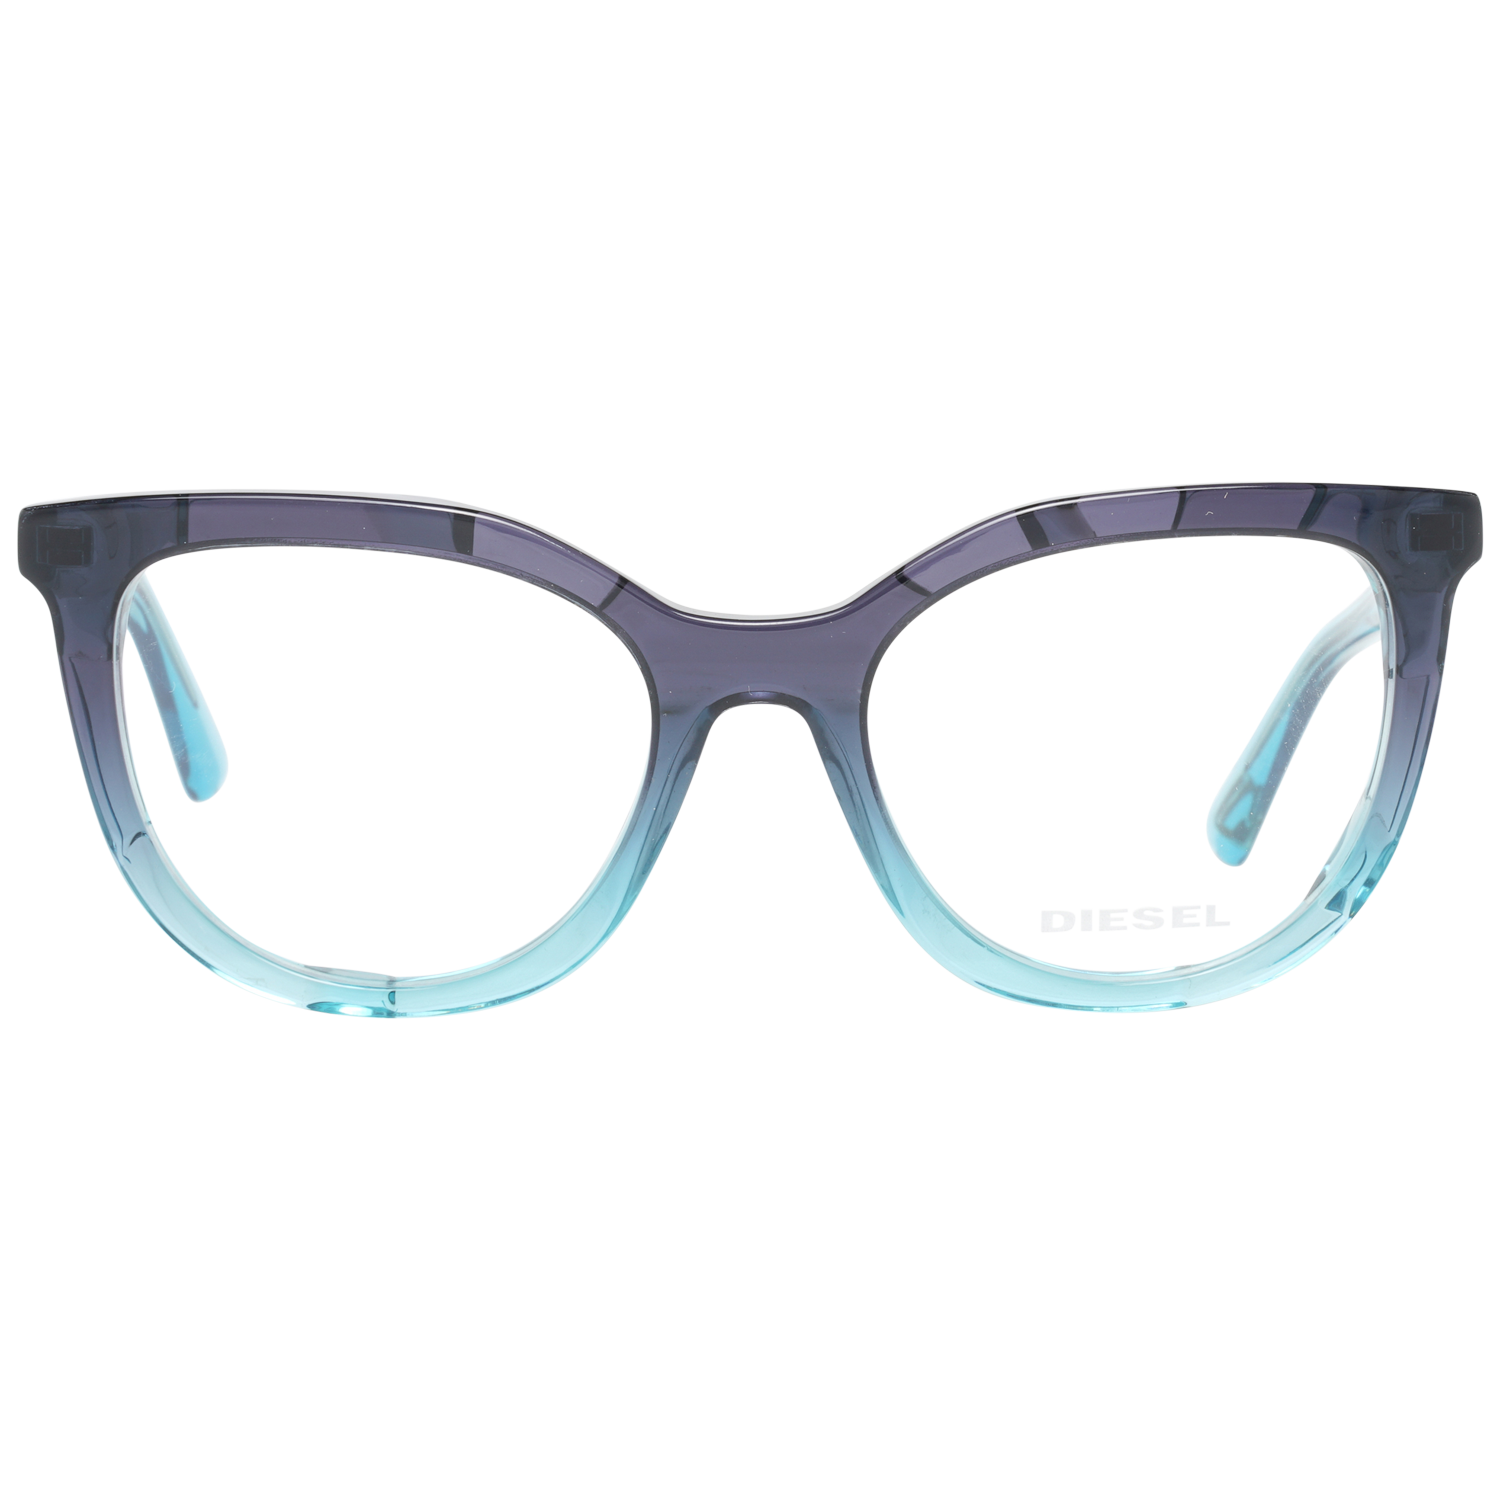 Diesel Optical Frame DL5277 089 50 Turquoise